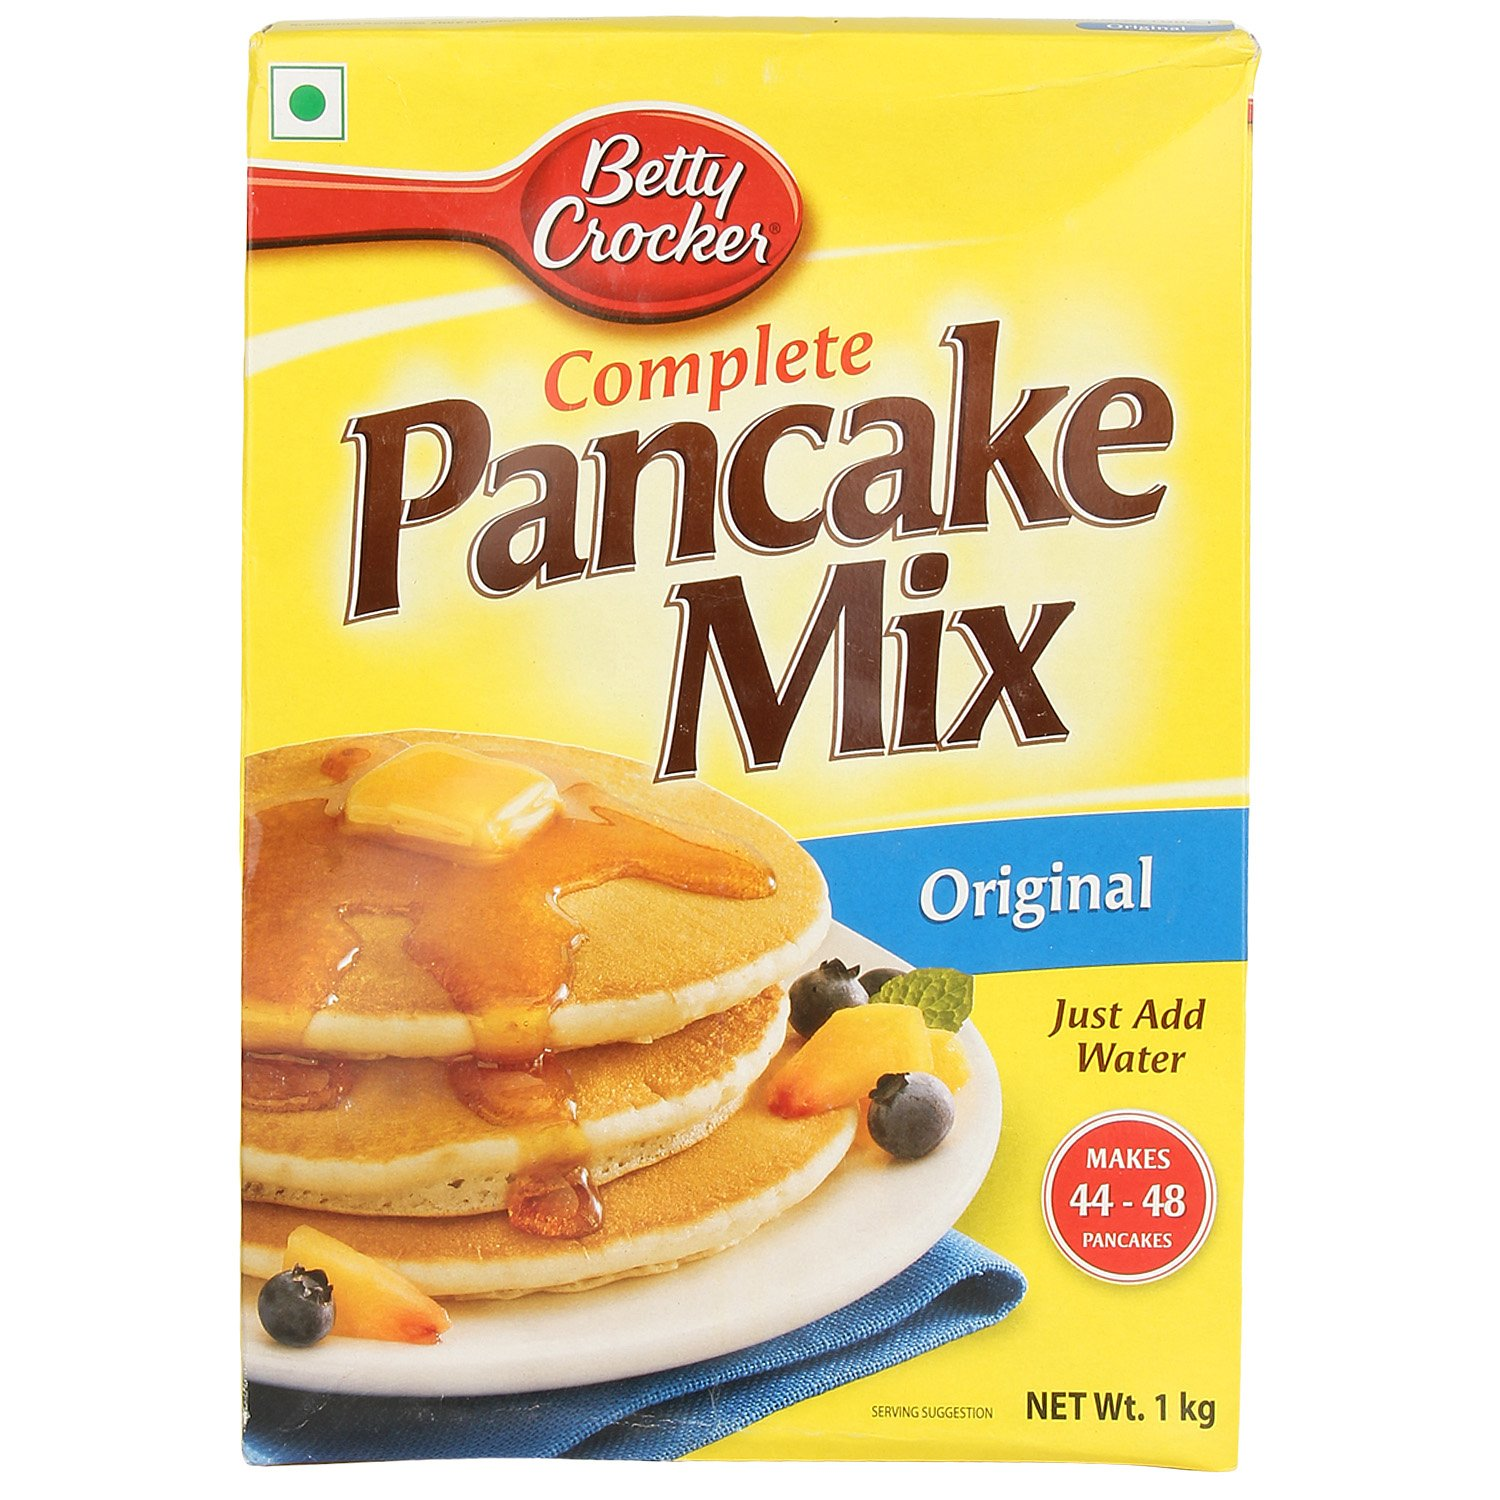 Amazon : Betty Crocker Complete Pancake Mix, 1KG @ Rs.175/-